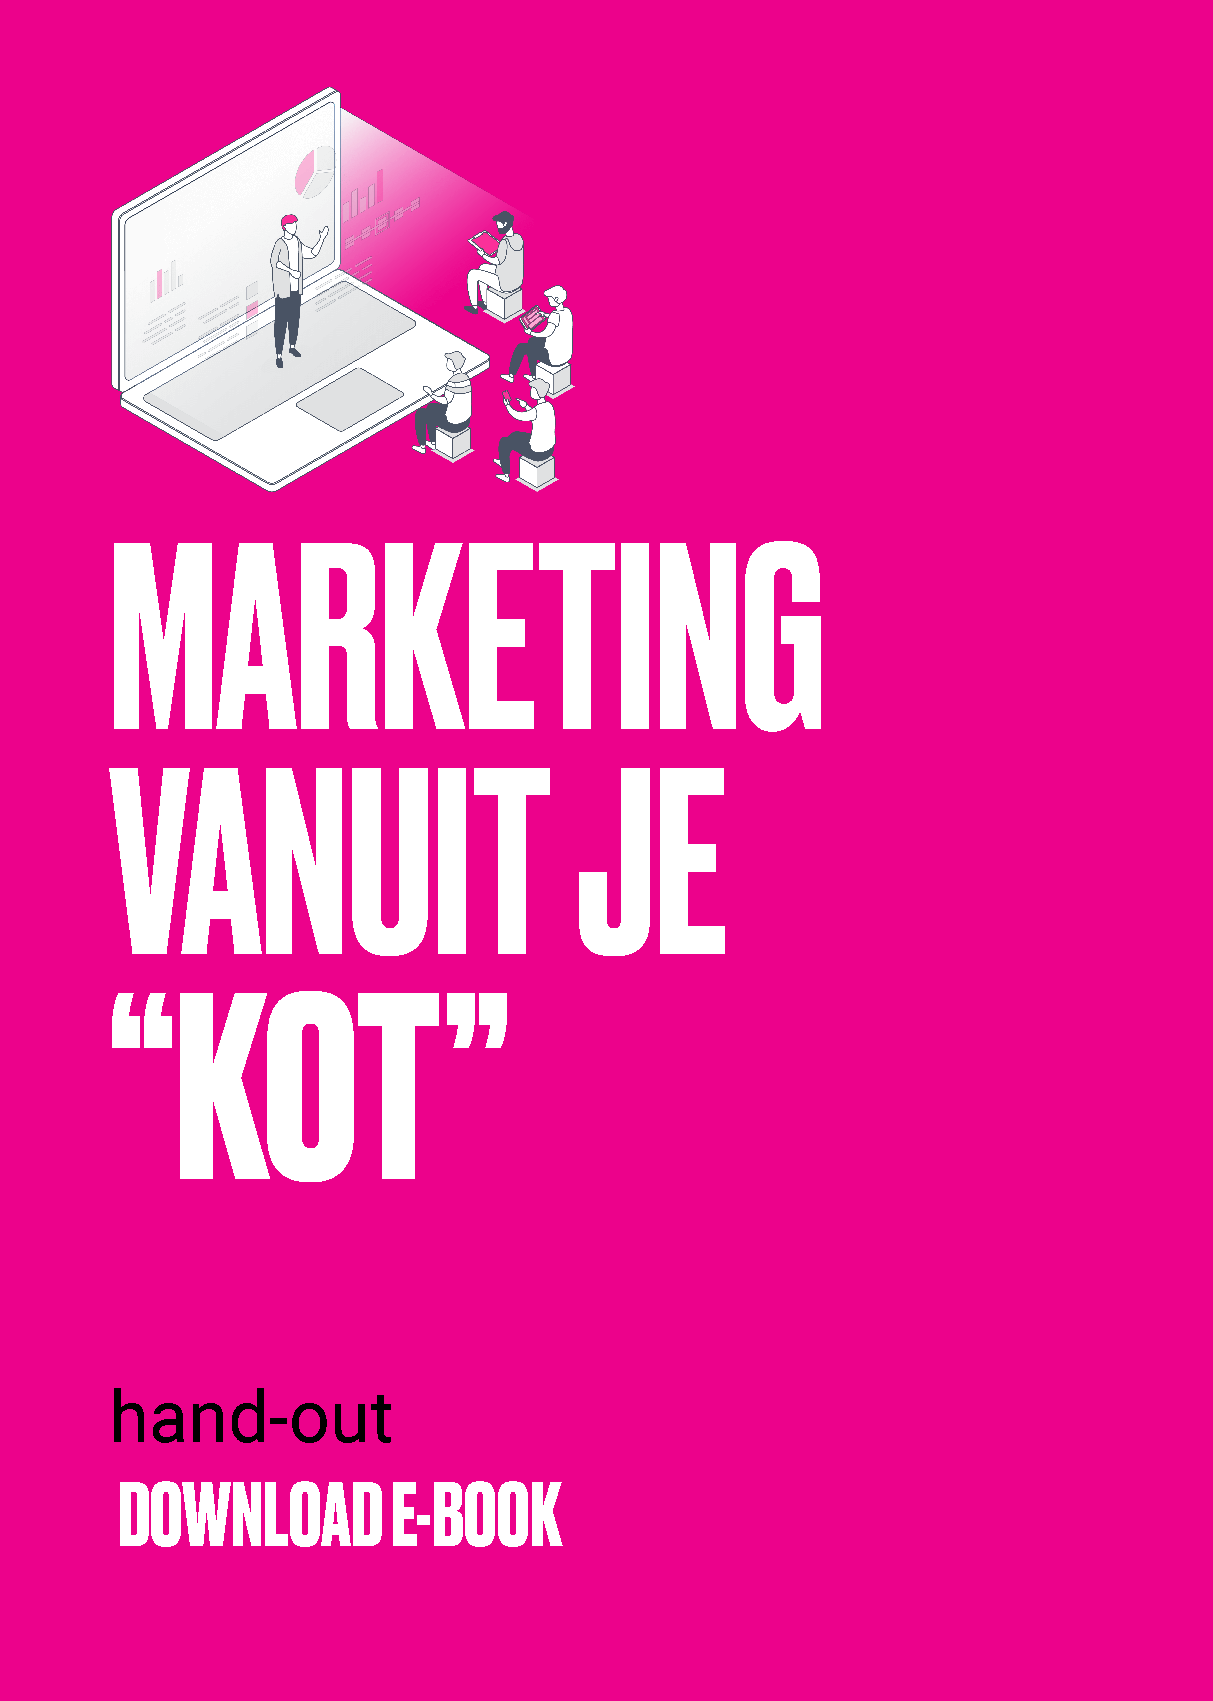 Marketing vanuit je kot